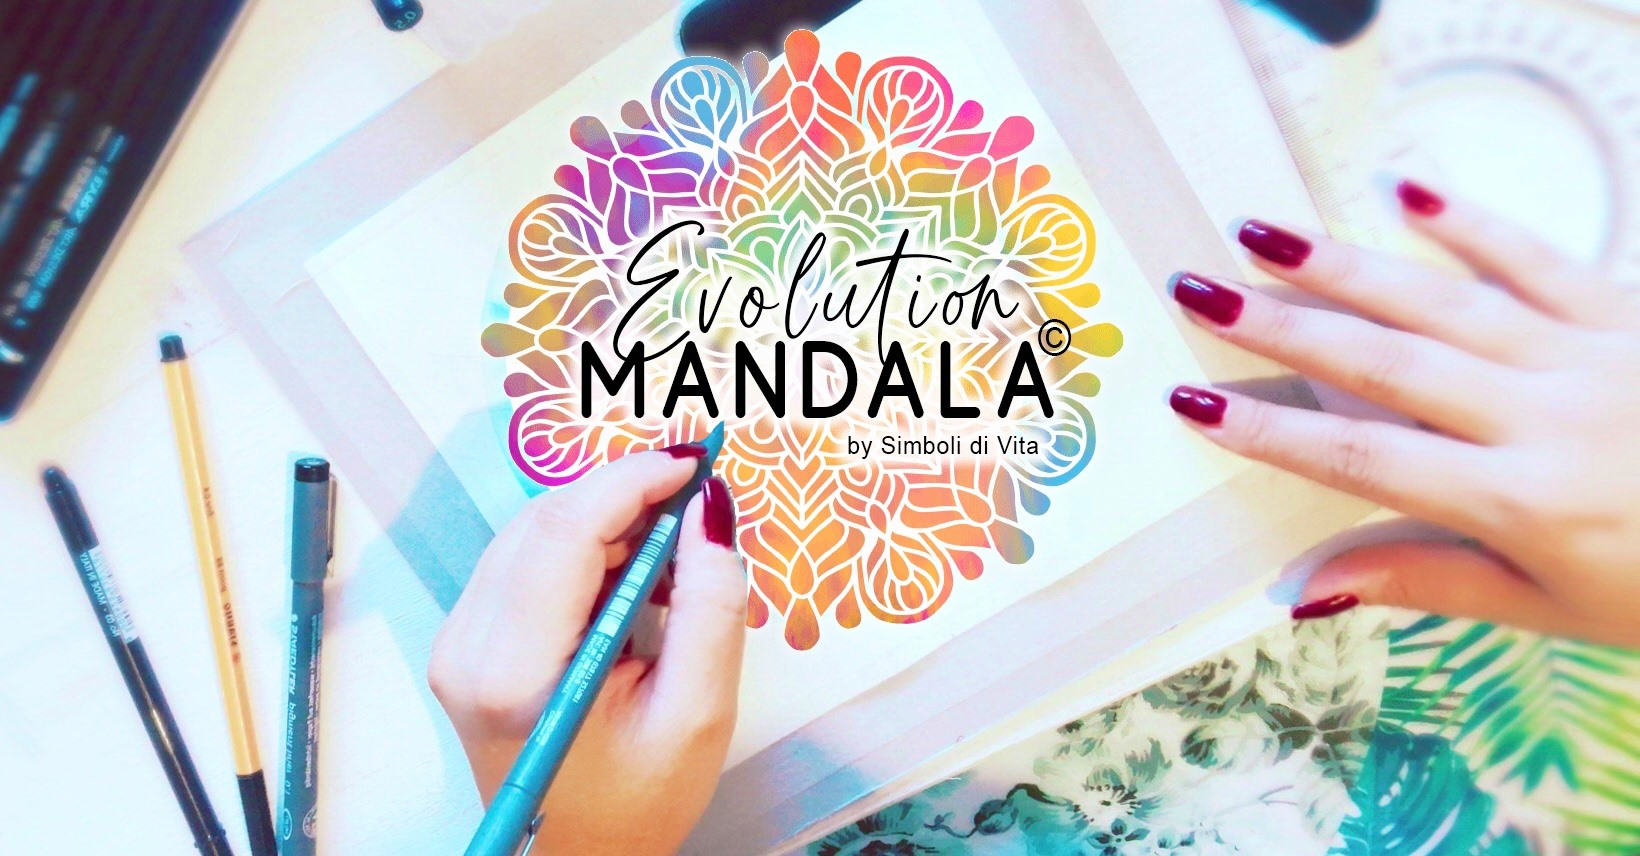 Evolutionmandala